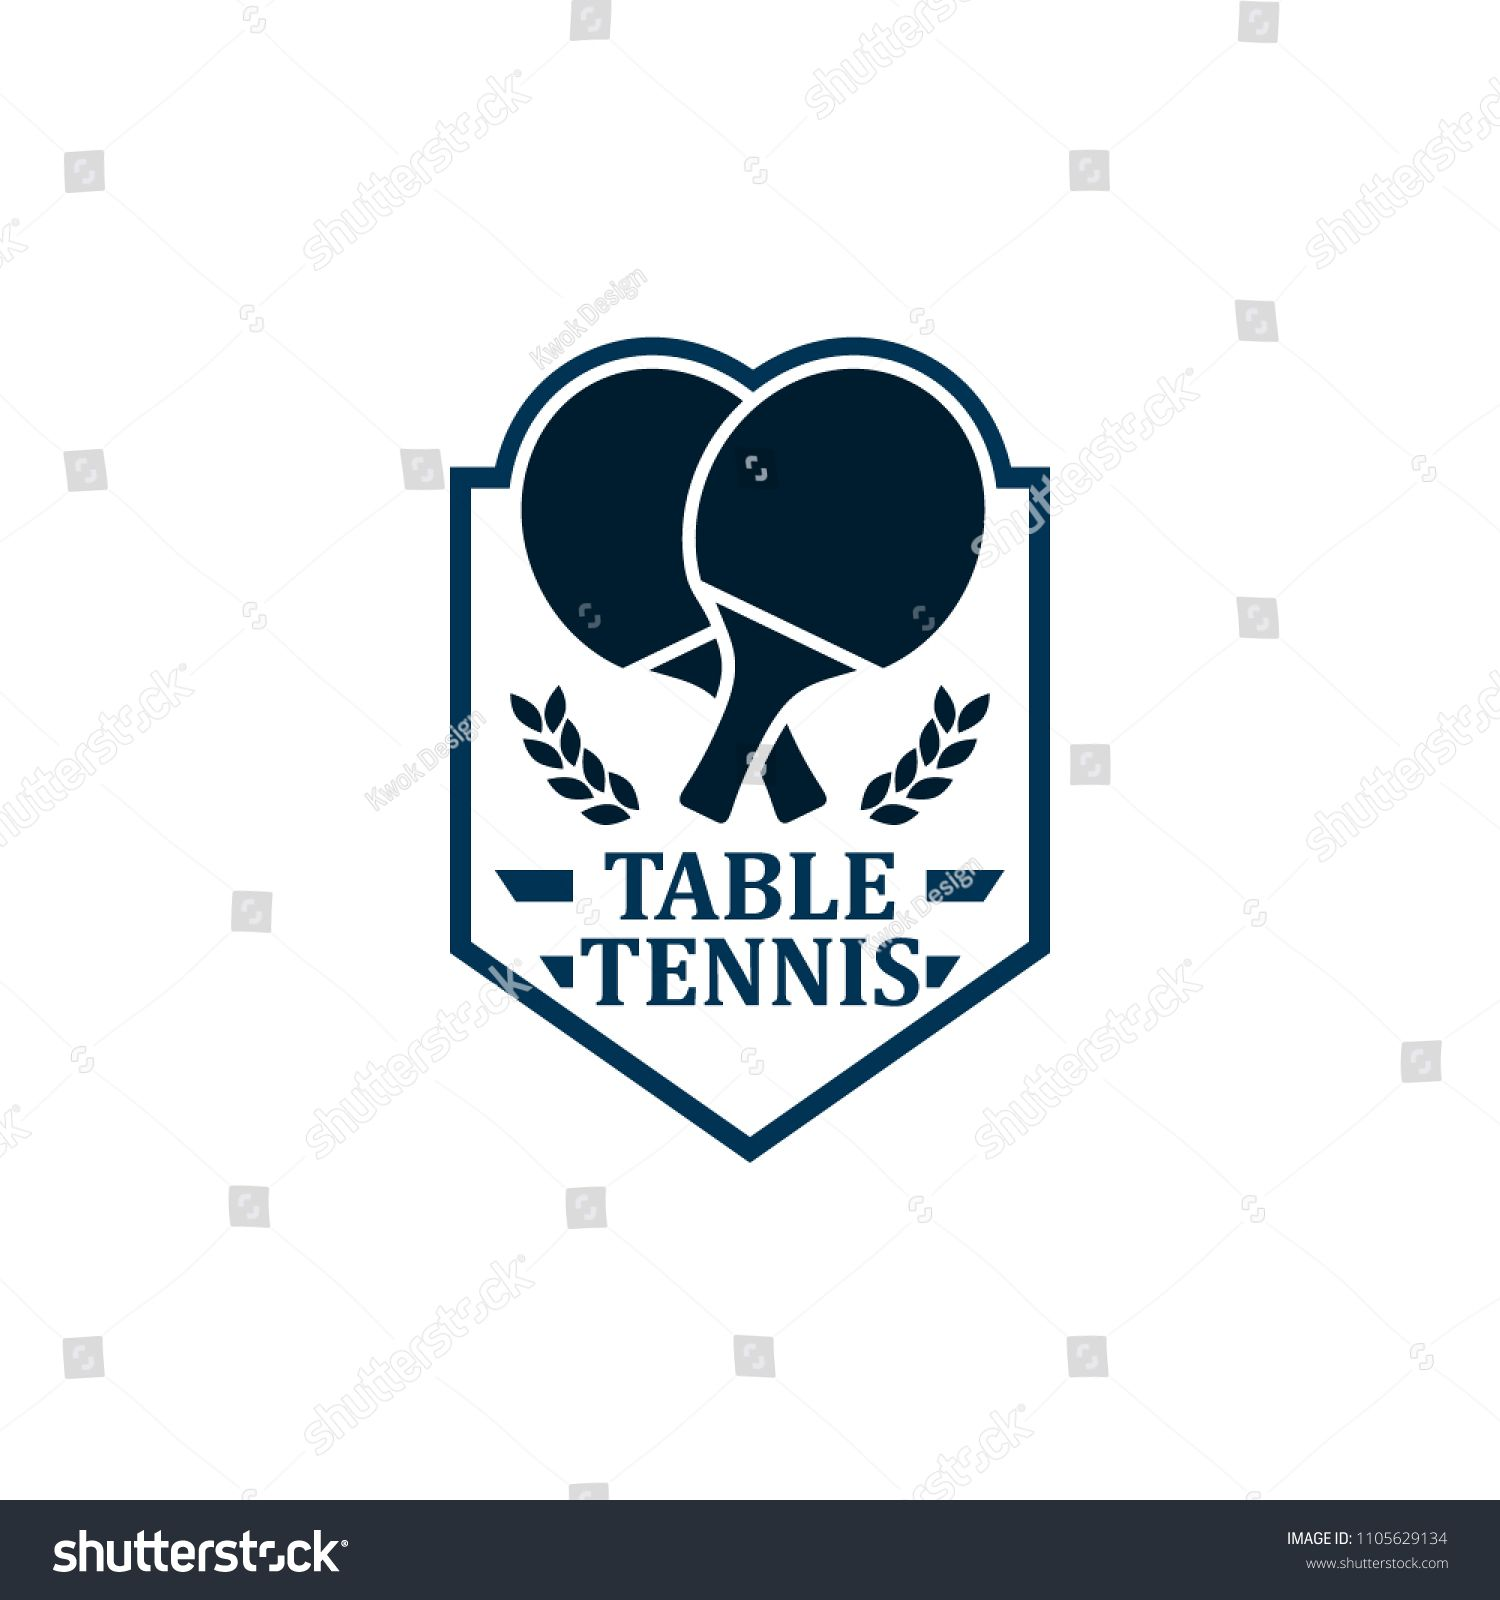 Table Tennis Badges Emblems Logos With Simple Text Designs Sport Labels Vector Illustration For Ping Pong Club Ad Spo Logo Gallery Emblem Logo Text Design